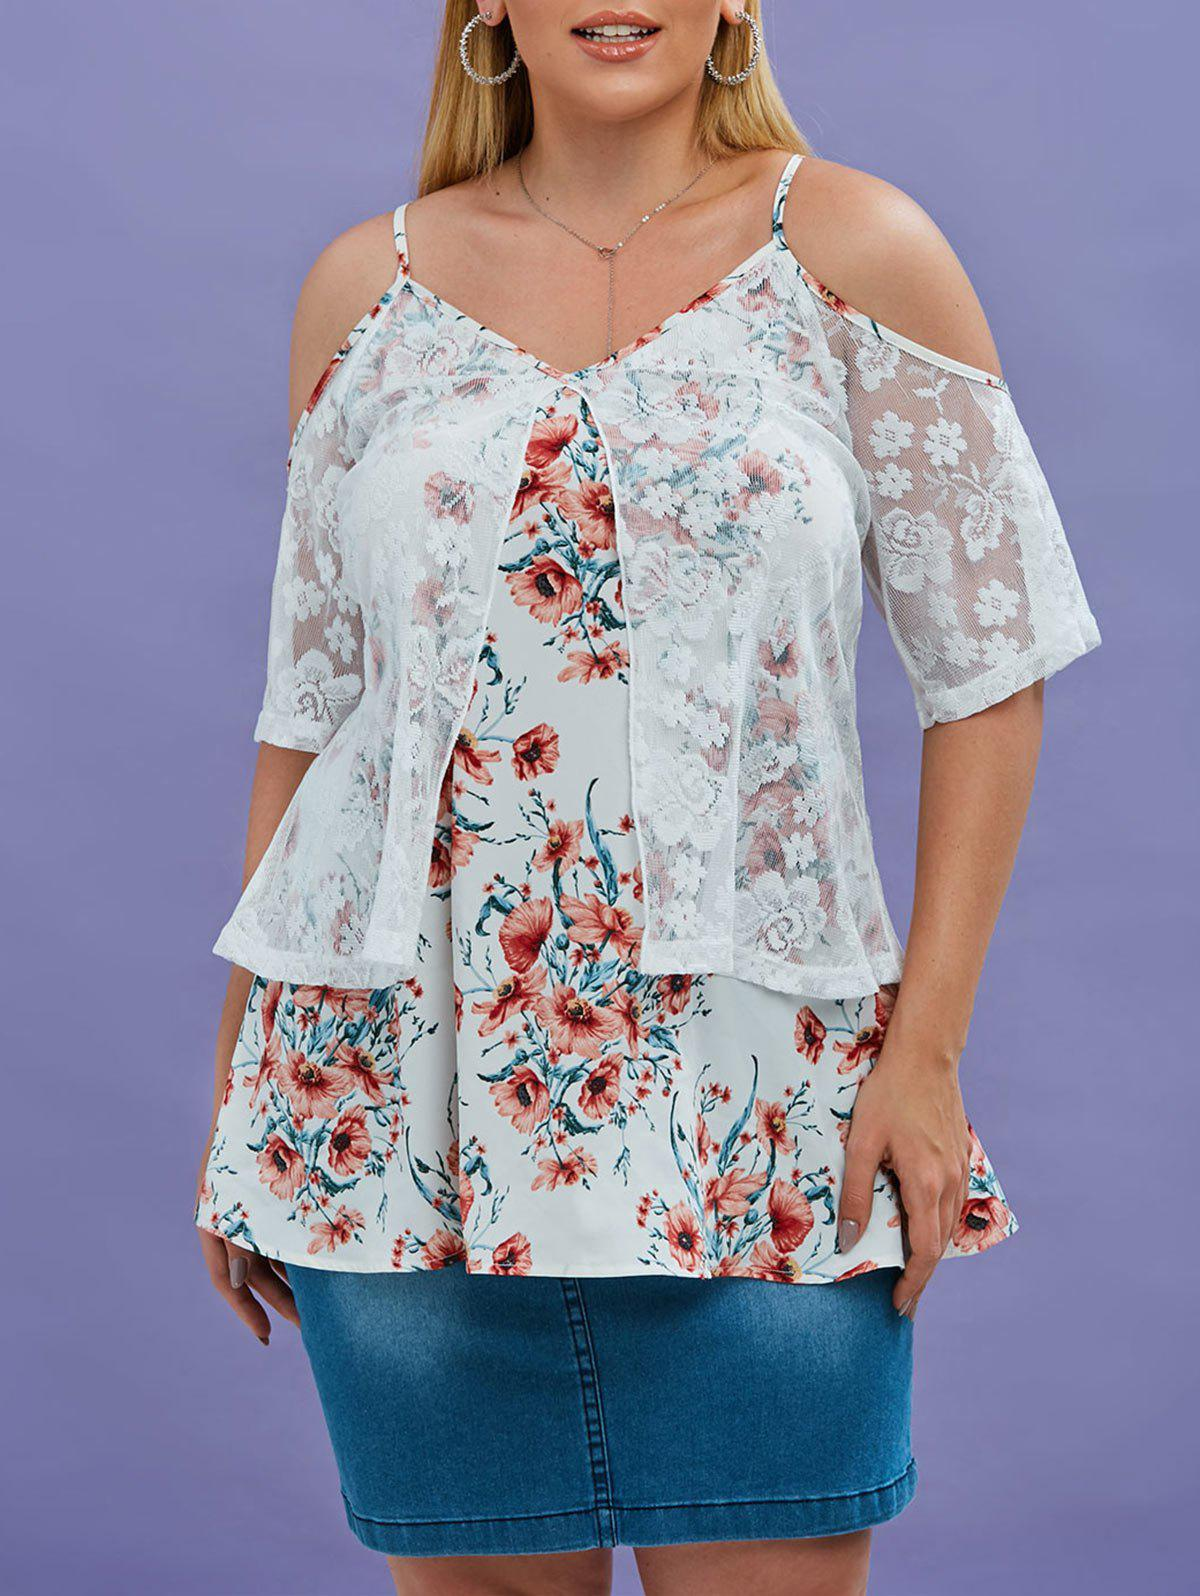 Plus Size Cold Shoulder Embroidered Lace Overlay Floral Blouse - multicolor 5X